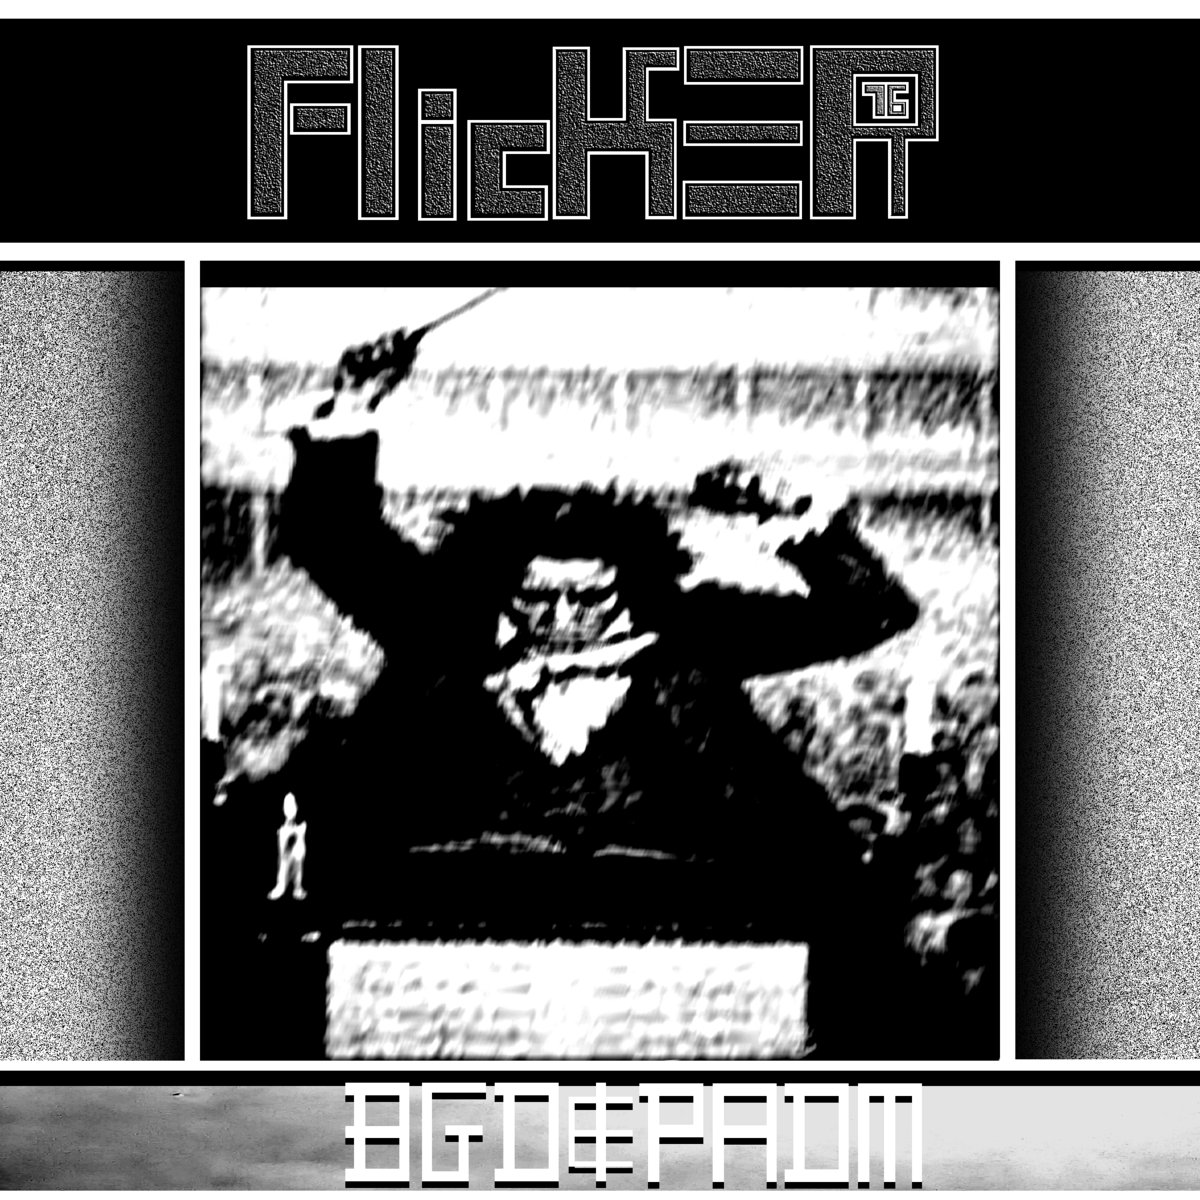 Flicker 76 - Beethoven Got Drunk And Purchased A Drum